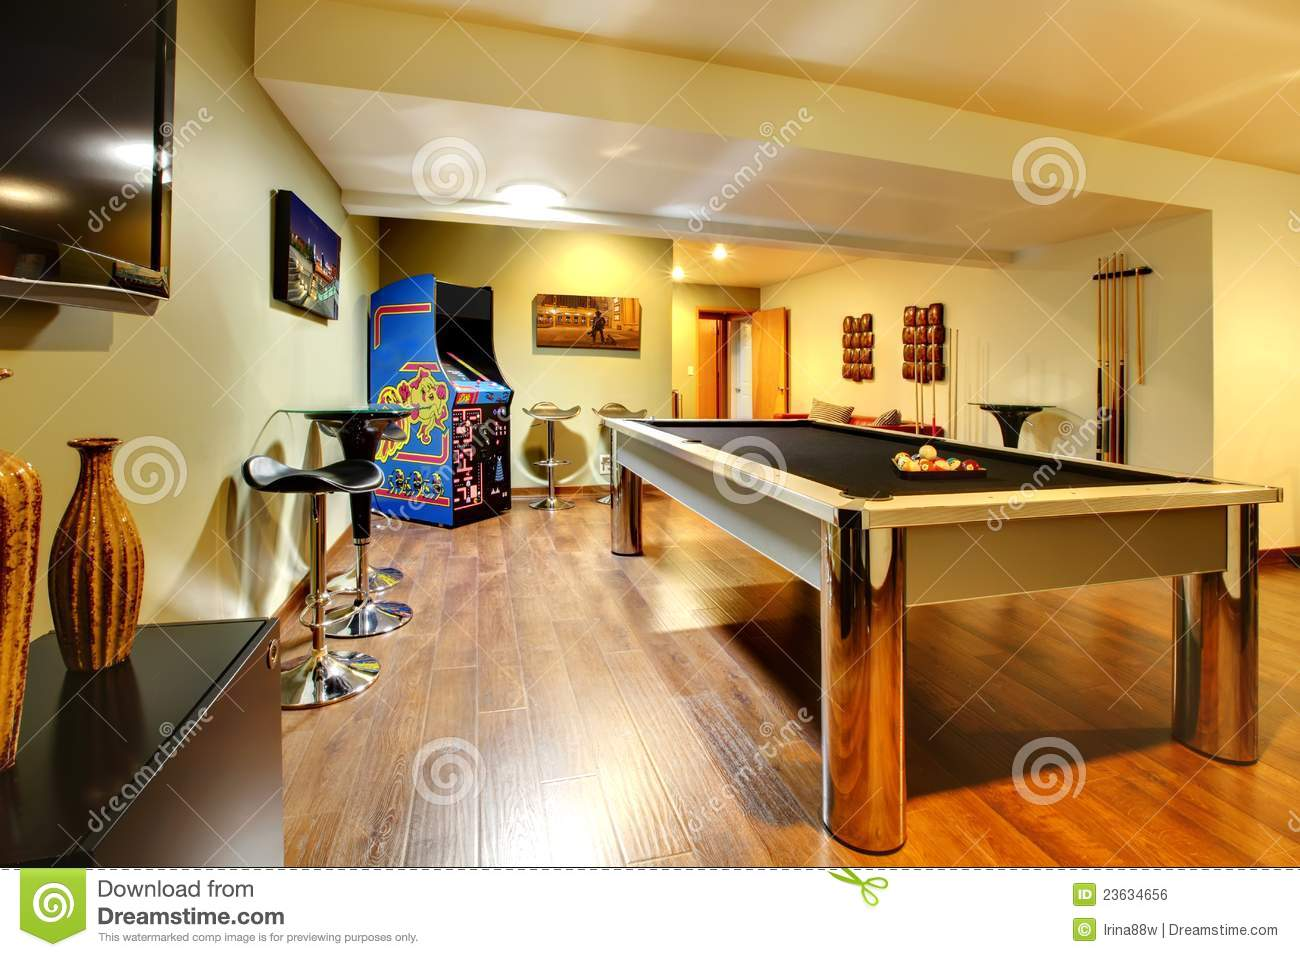 Play Party Room Home Interior With Pool Table Royalty